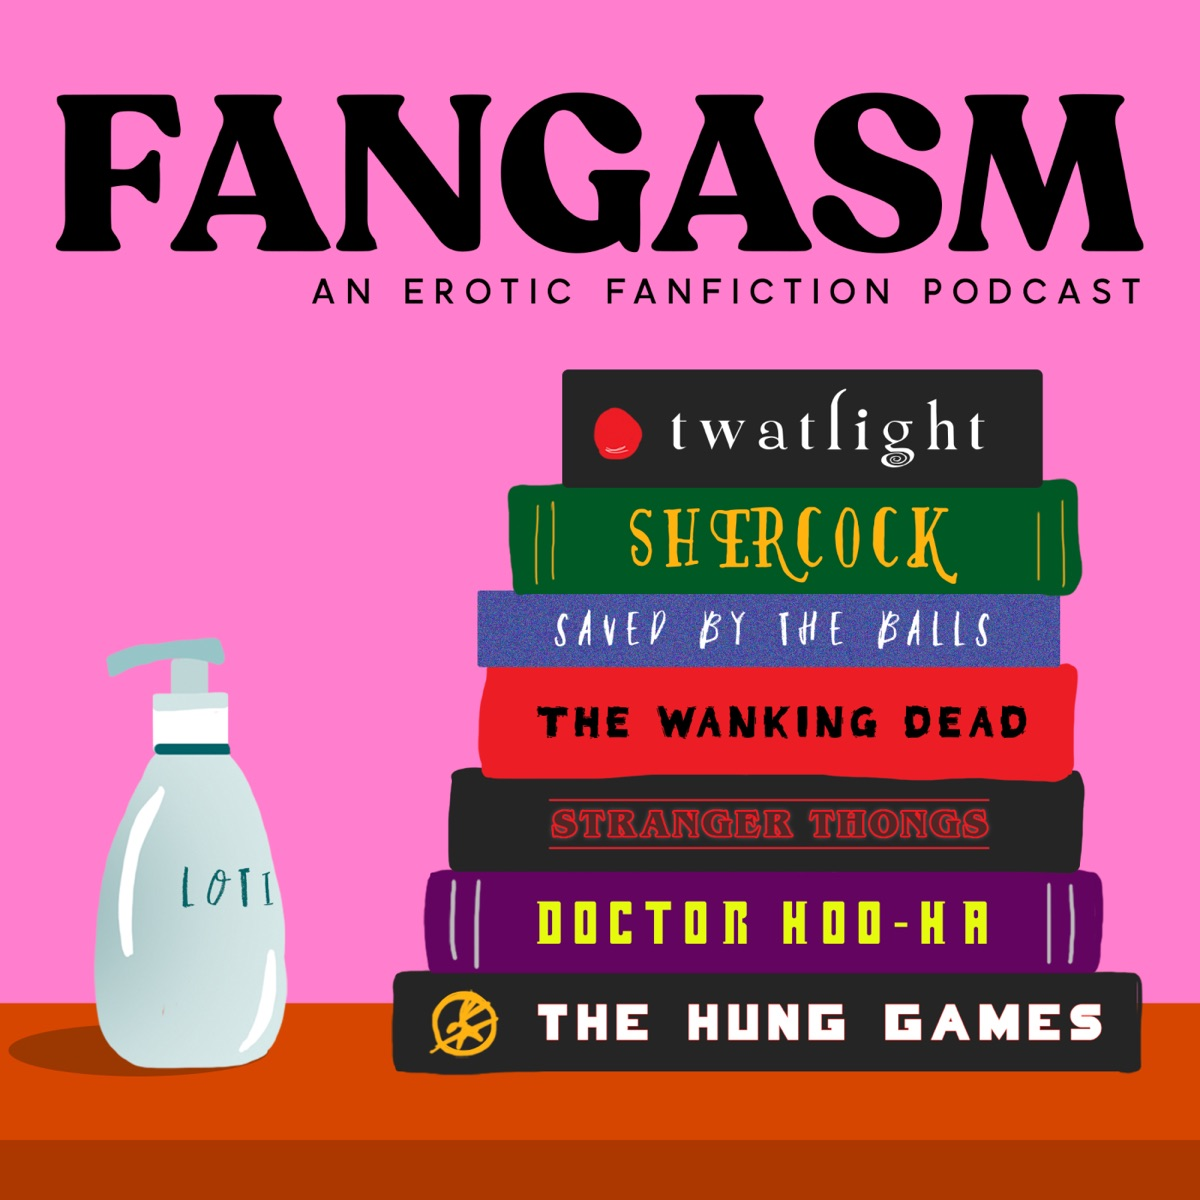 fangasm podcasts for every mood